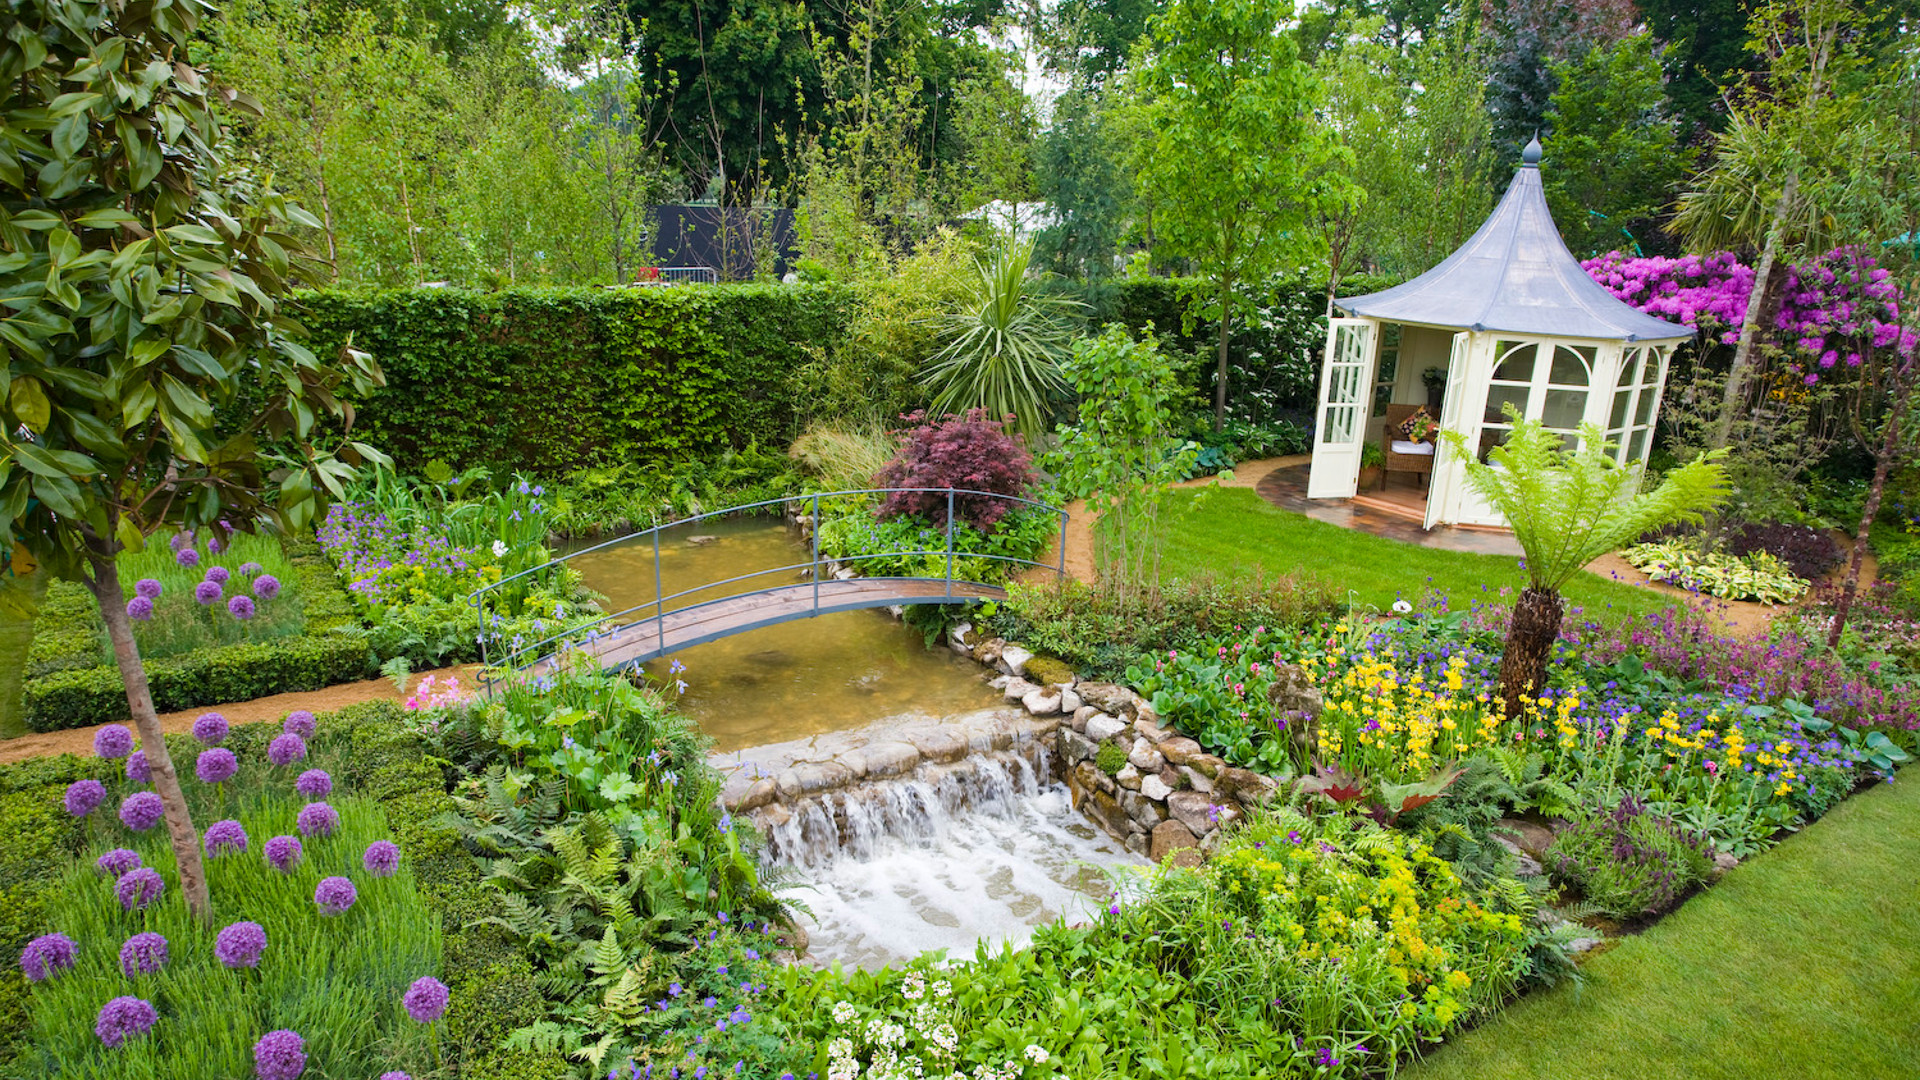 Tim austen garden designs designer gardens for The best garden design